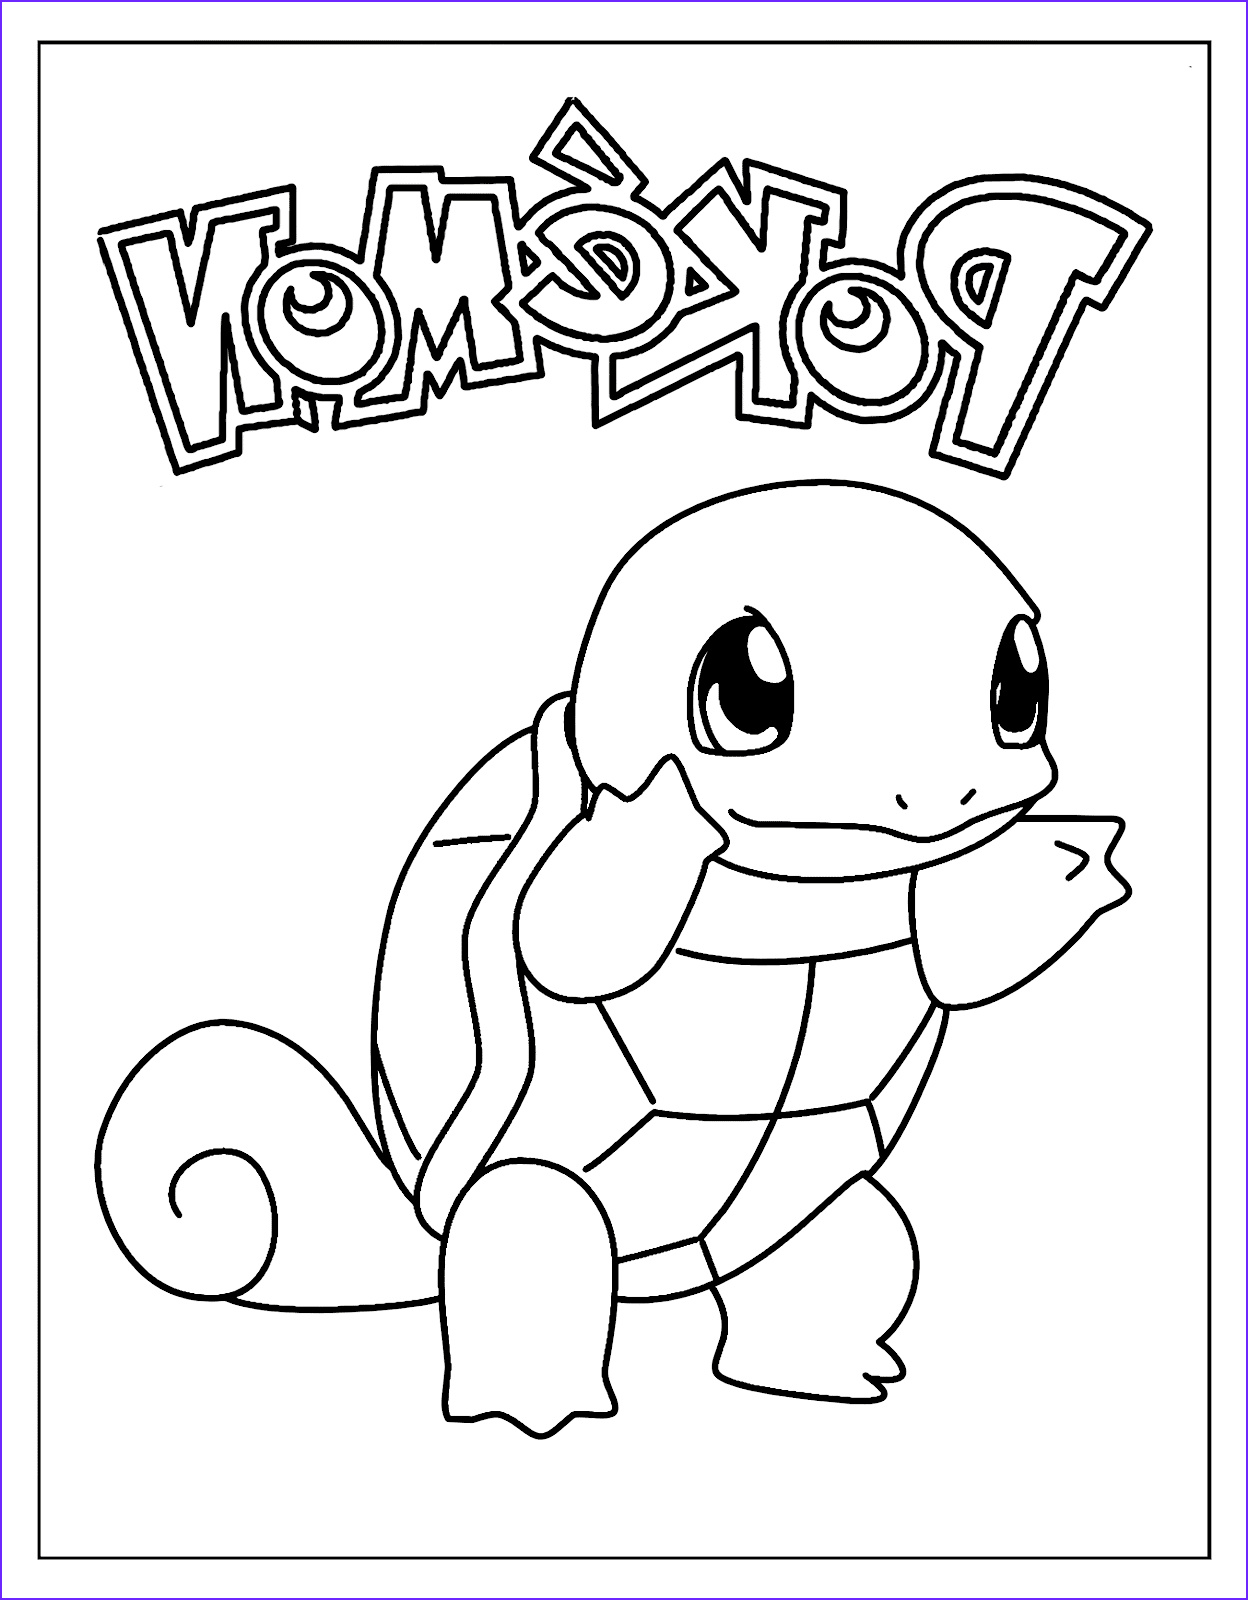 Squirtle Coloring Page Luxury Images New Squirtle Coloring Pages Download Free Pokemon